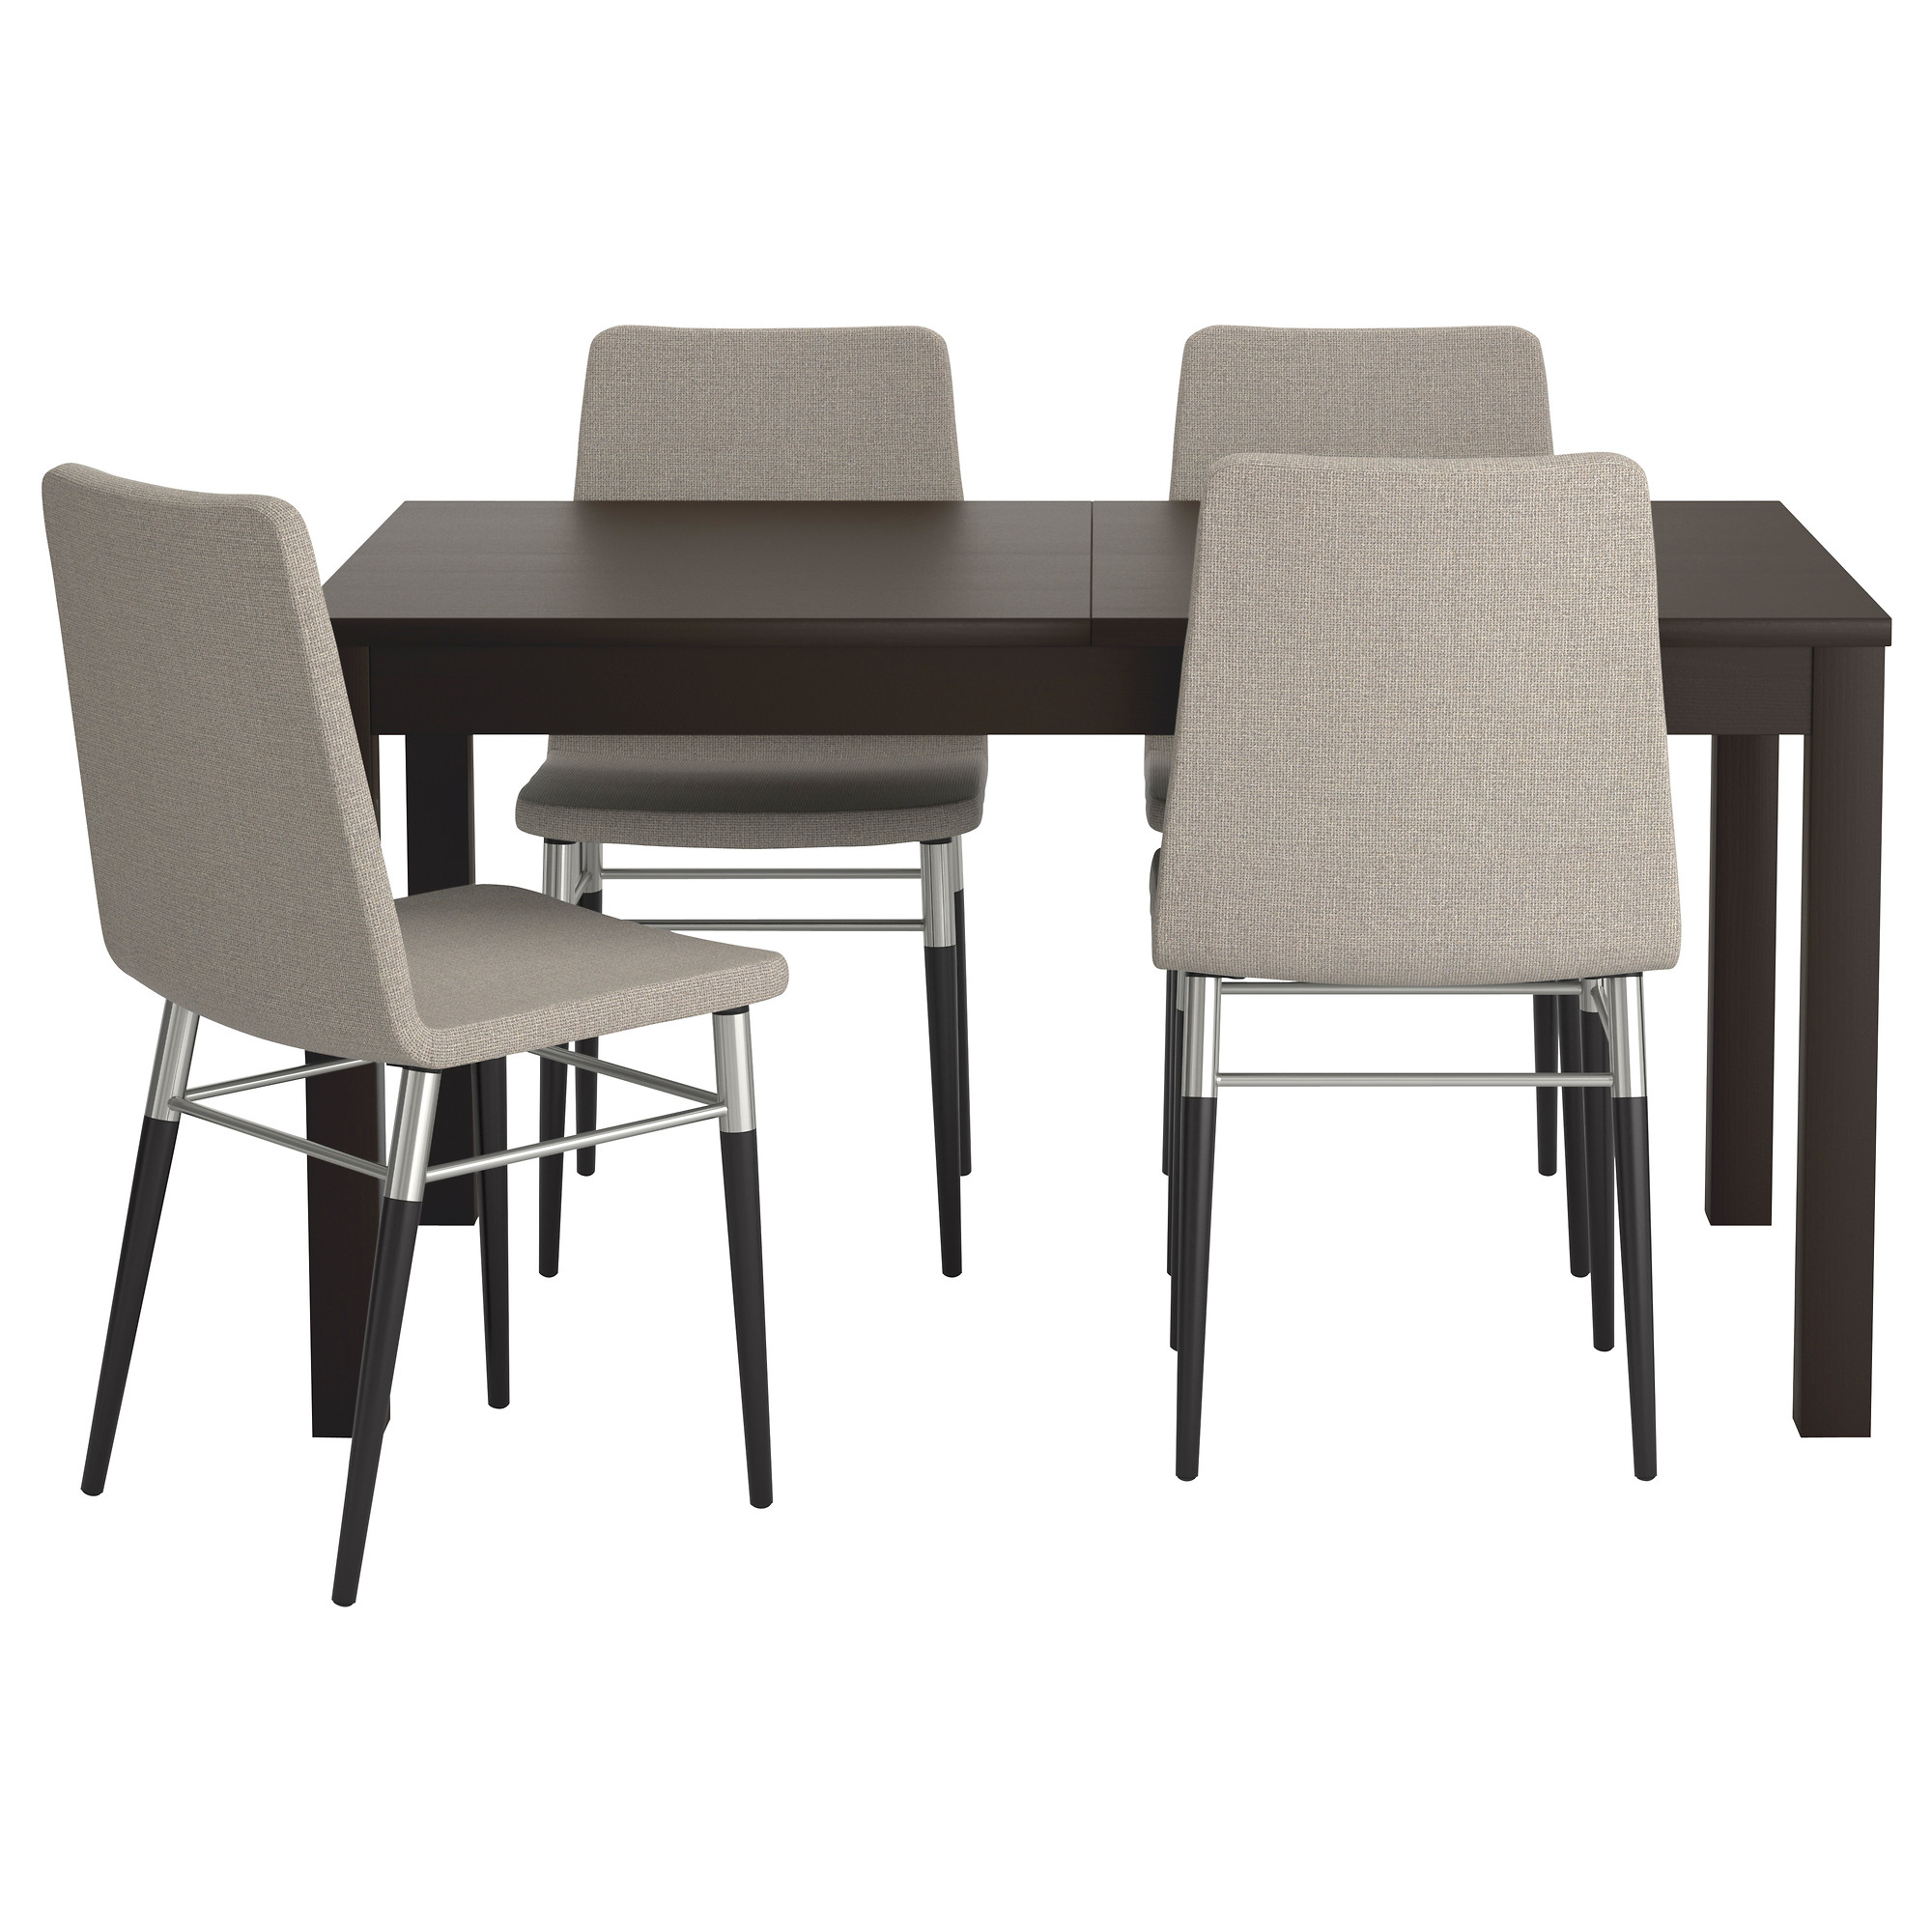 bjursta preben table and 4 chairs brown black ten light gray length - Dining Room Set Ikea